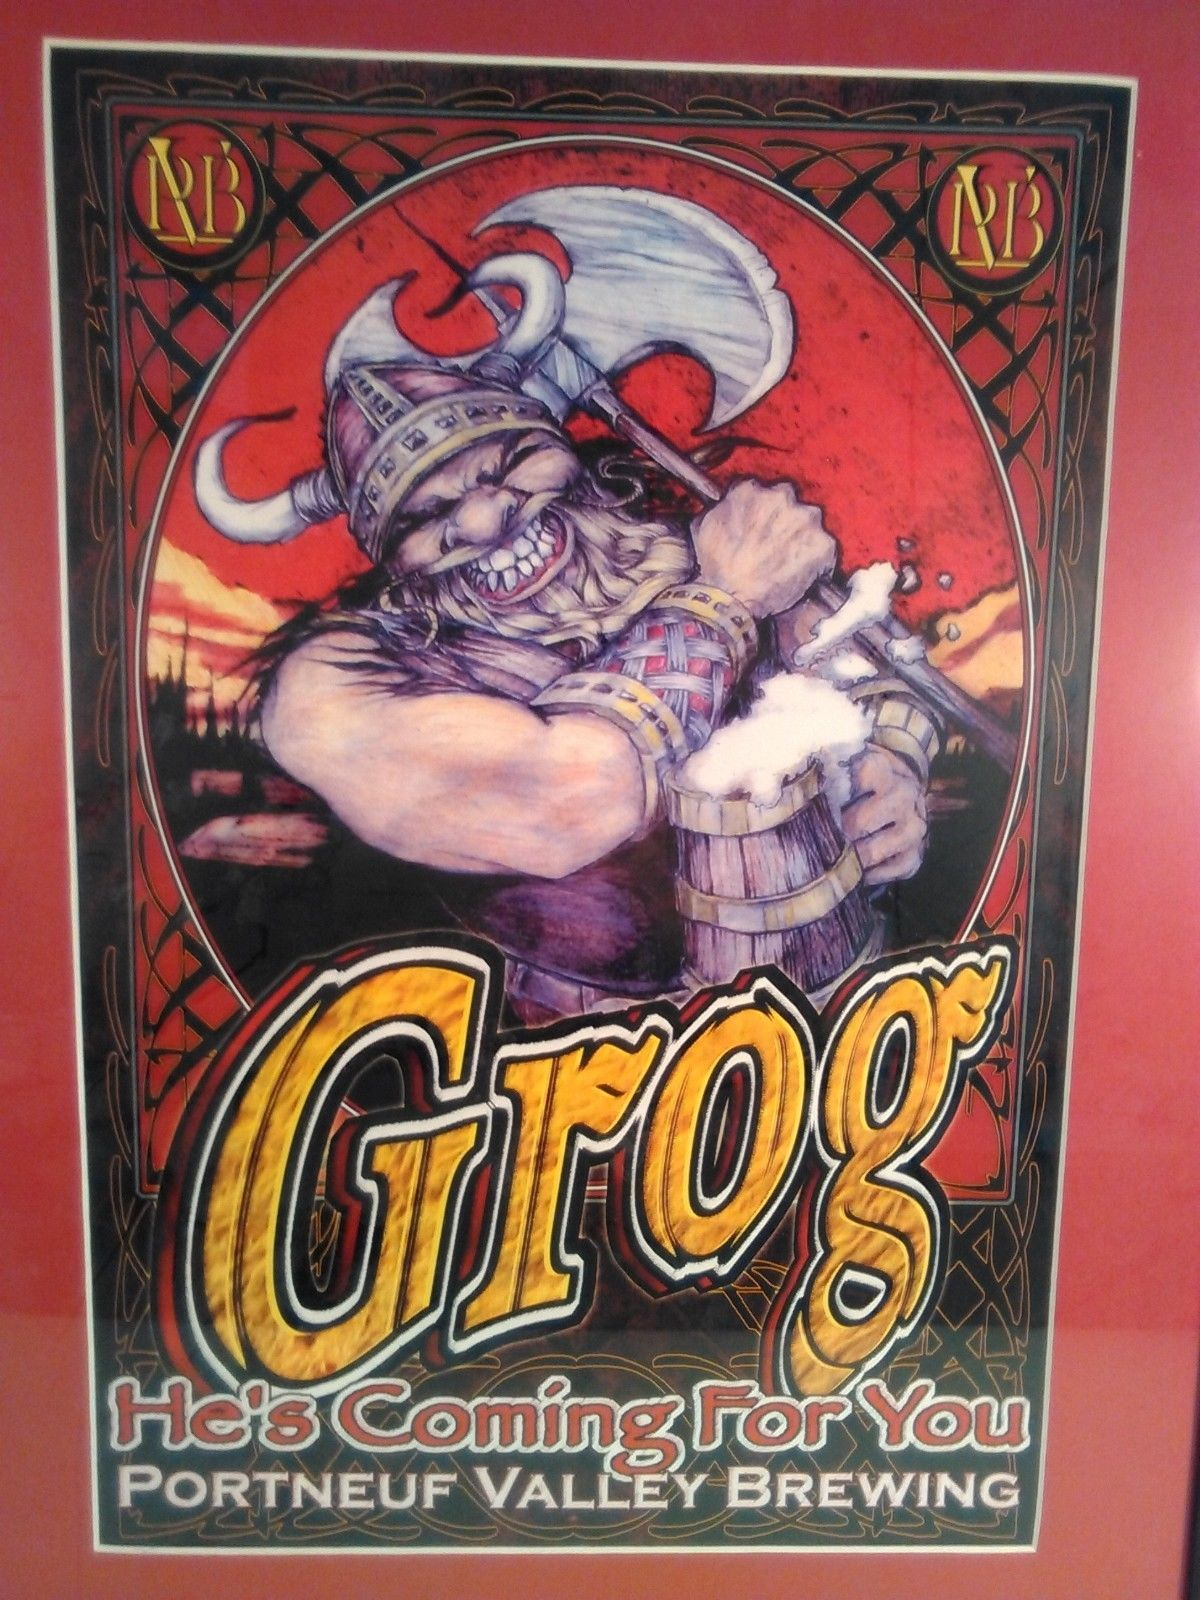 "GROG PORTNEUF VALLEY BREWING CO. BEER SIGN WALL ART PRINT FRAMED 22.5"" X 18.5"""